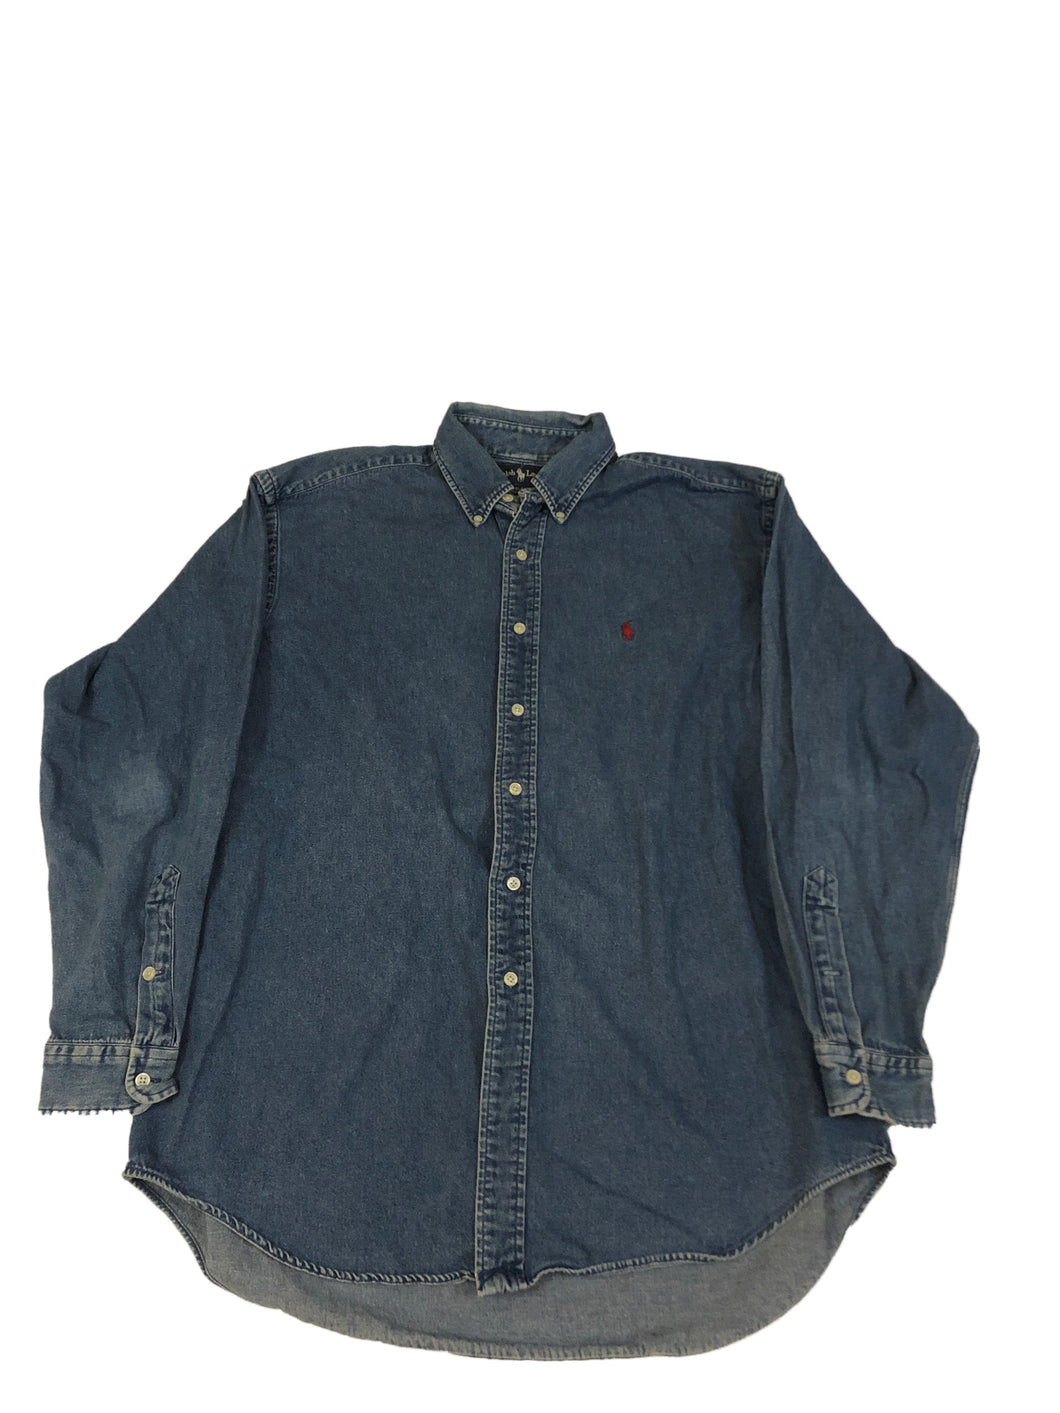 Polo Ralph Lauren Denim Button Up